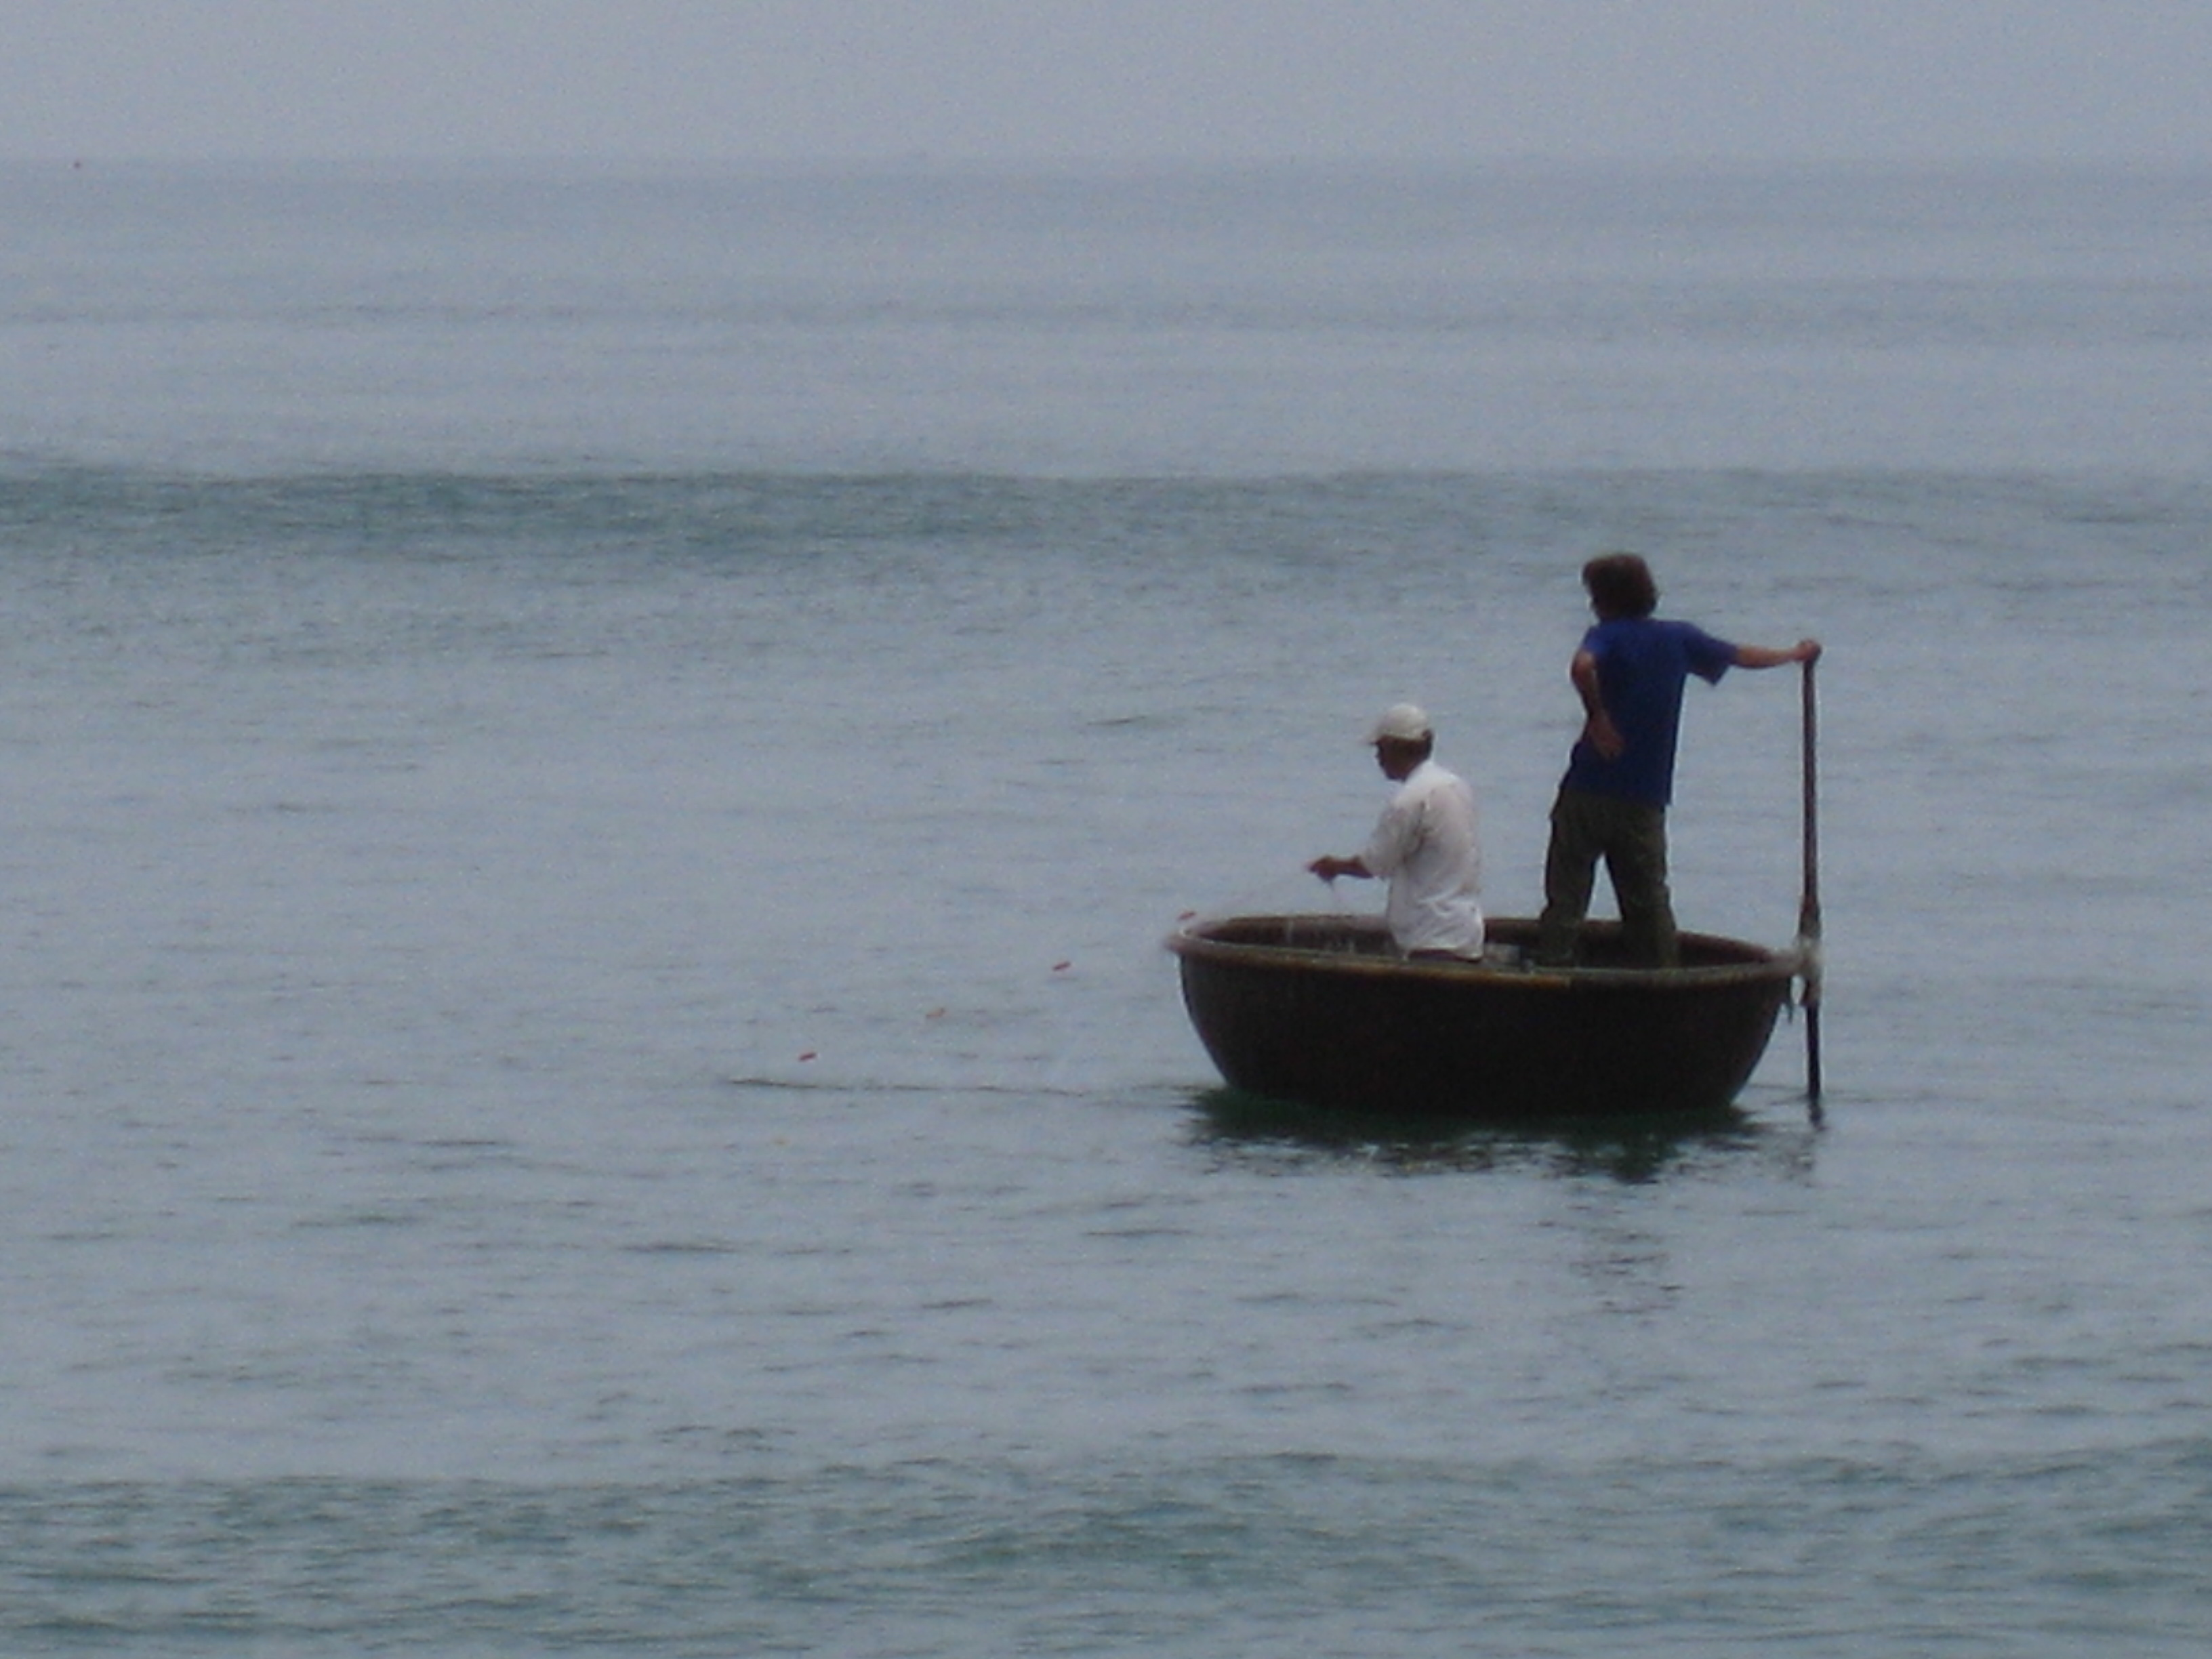 Last visit to Vietnam, was on the beaches watching local fishermen